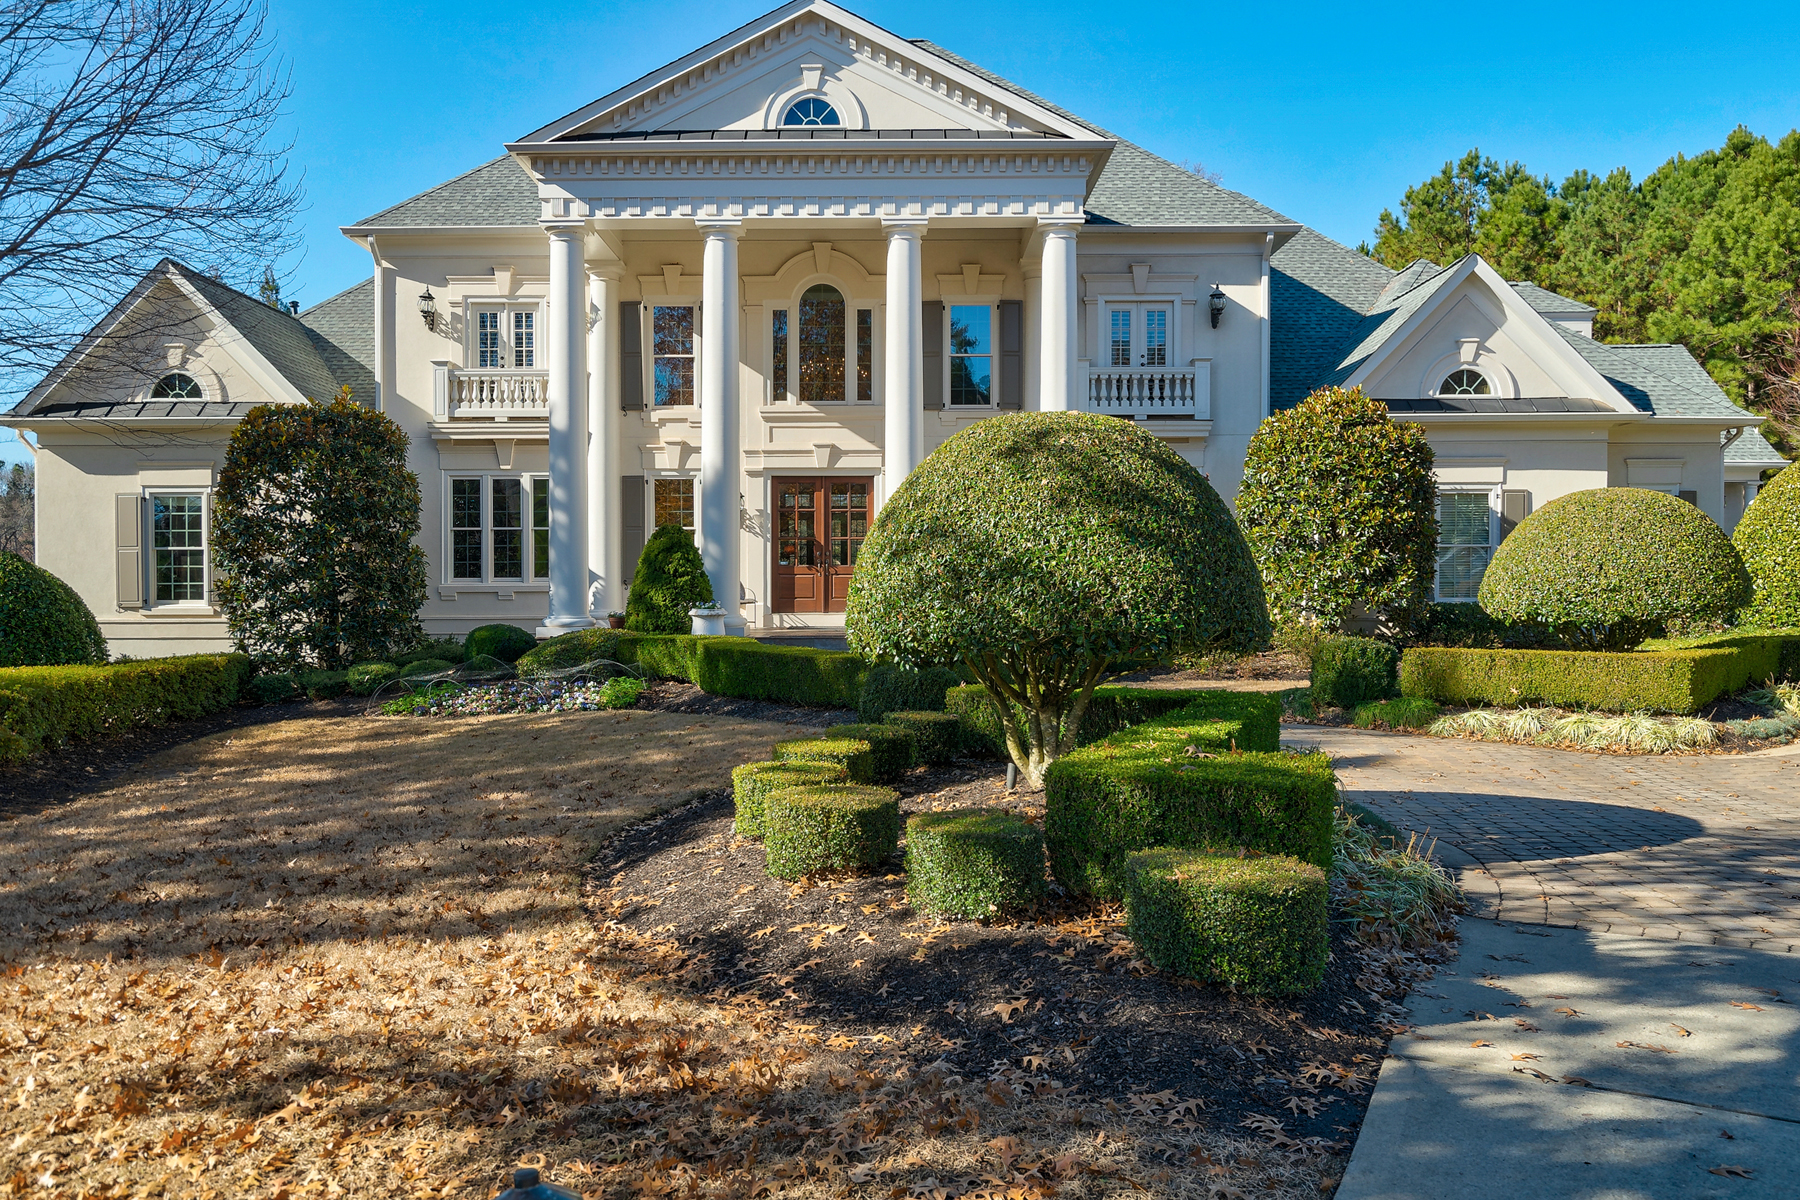 Single Family Homes for Active at Stunning Southern Charm With Beautiful English Garden 2411 Lockerly Pass Duluth, Georgia 30017 United States